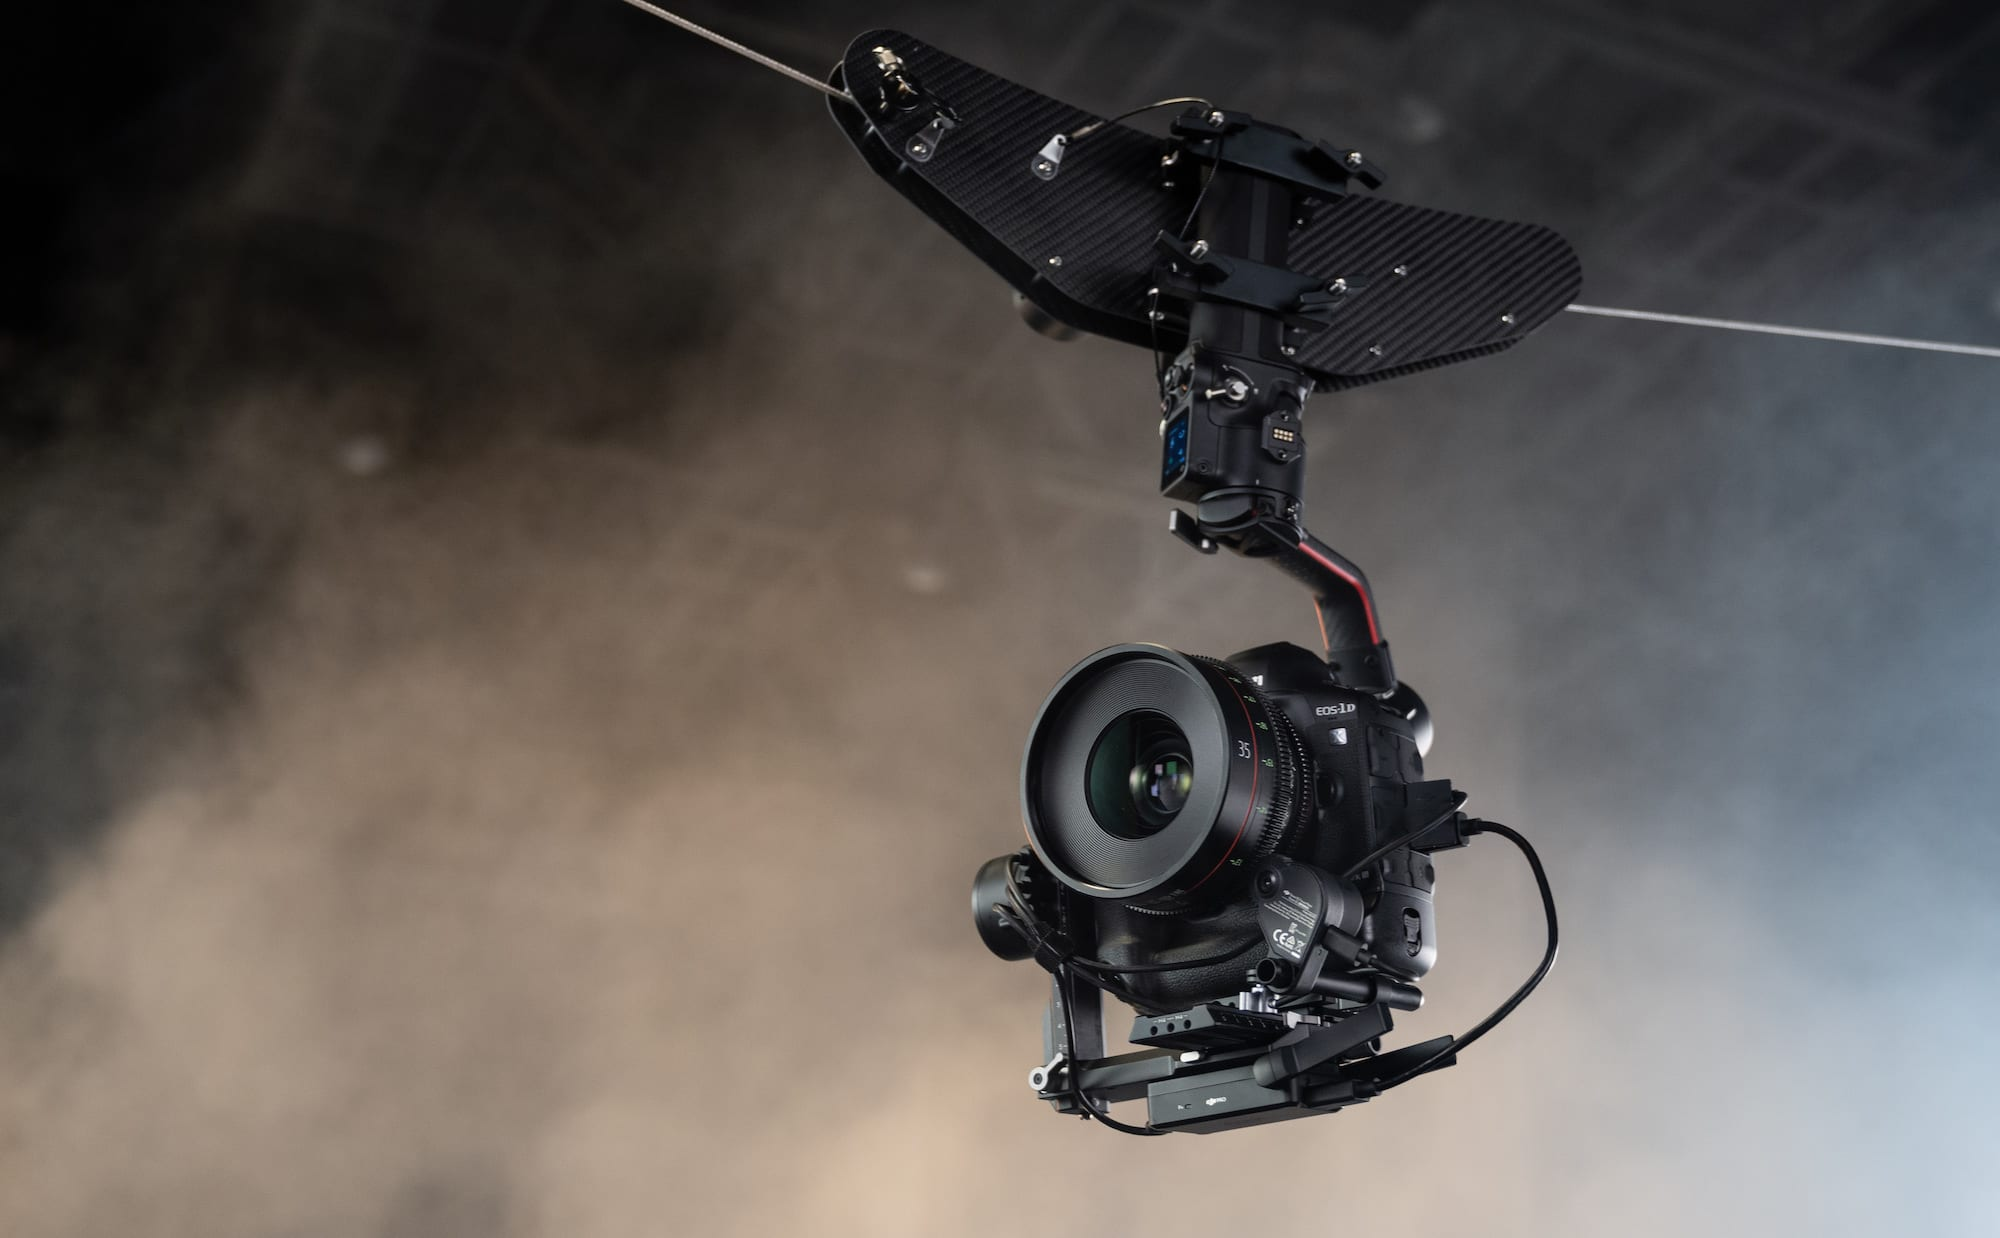 DJI introduces new Ronin Series with RS2 gimbal